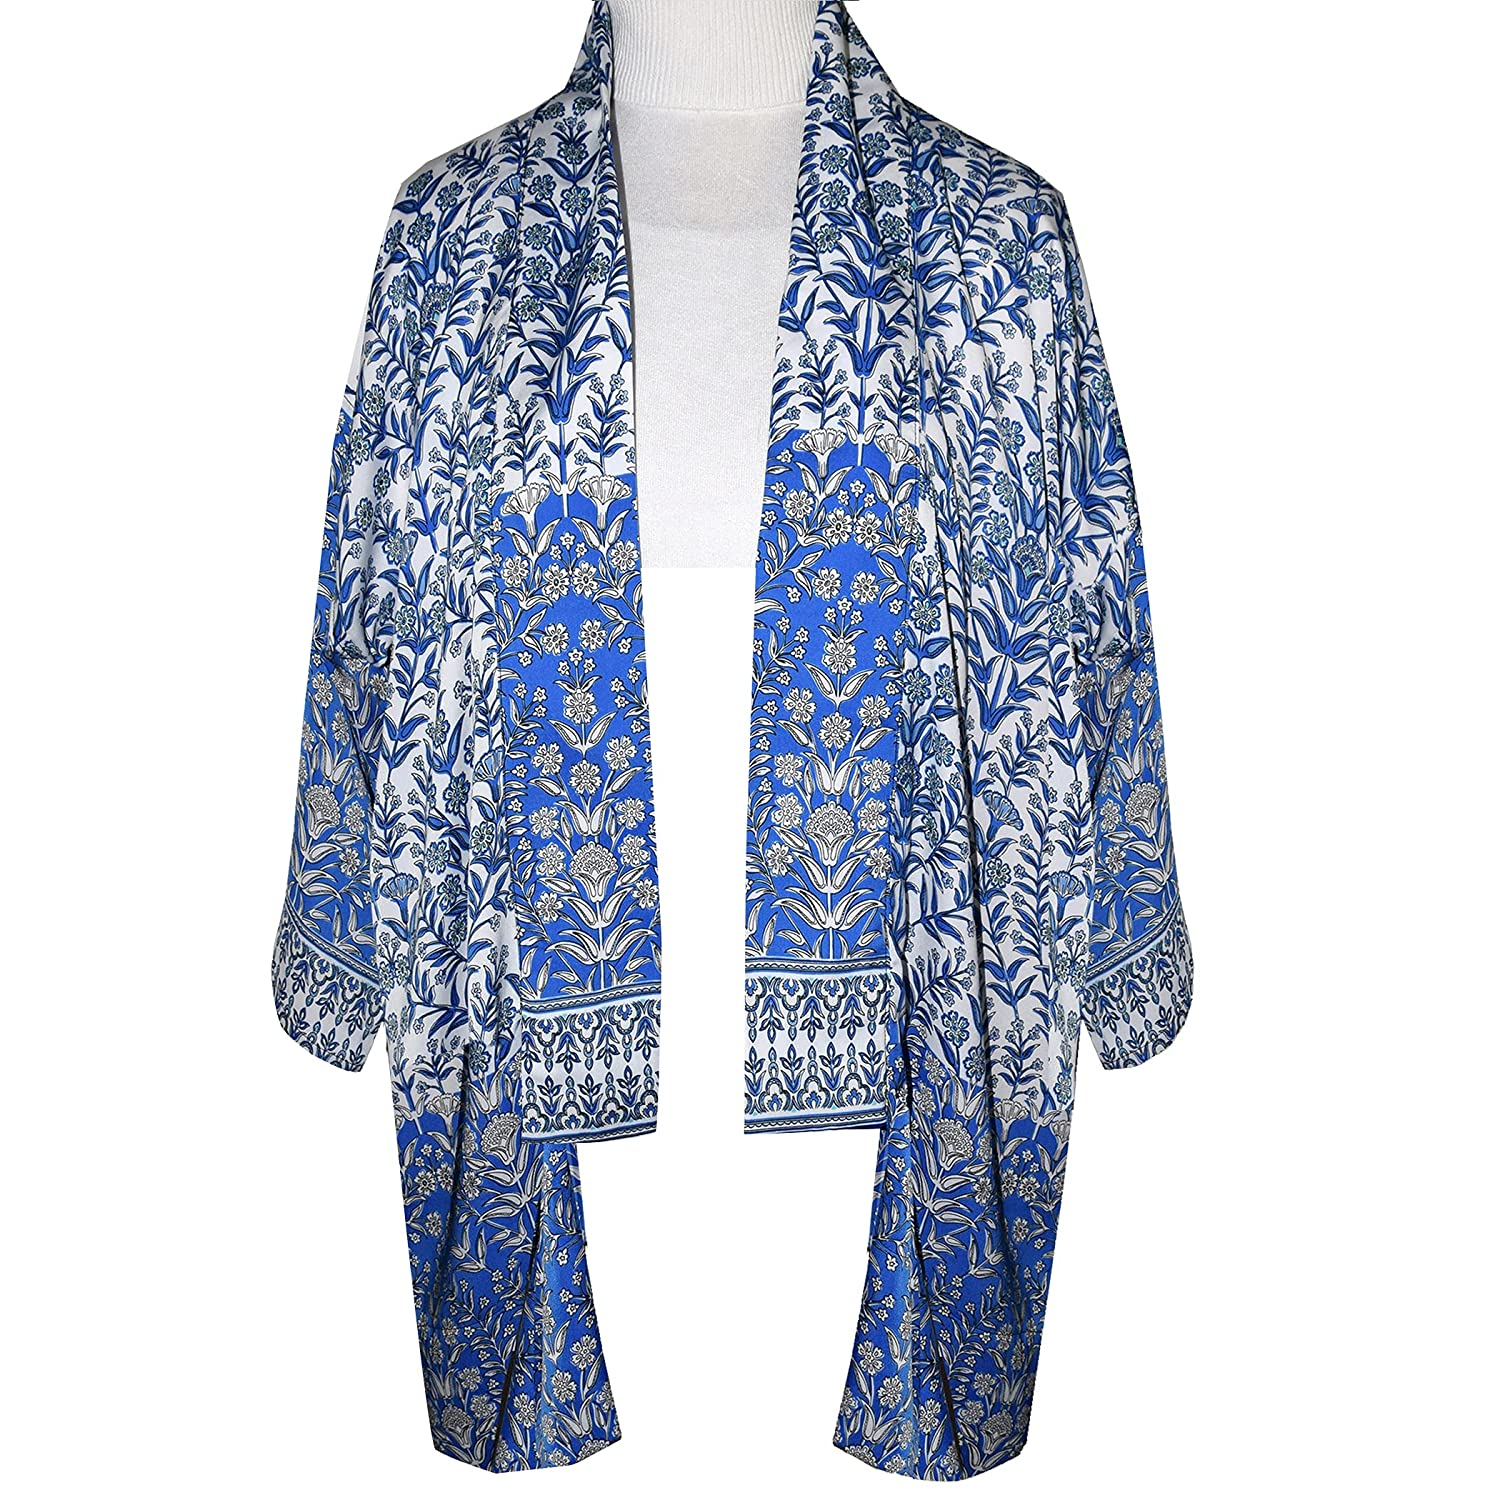 One Outlet New sales SALE of a Kind Blue and Print Polyester White Jacket Kimono Silky